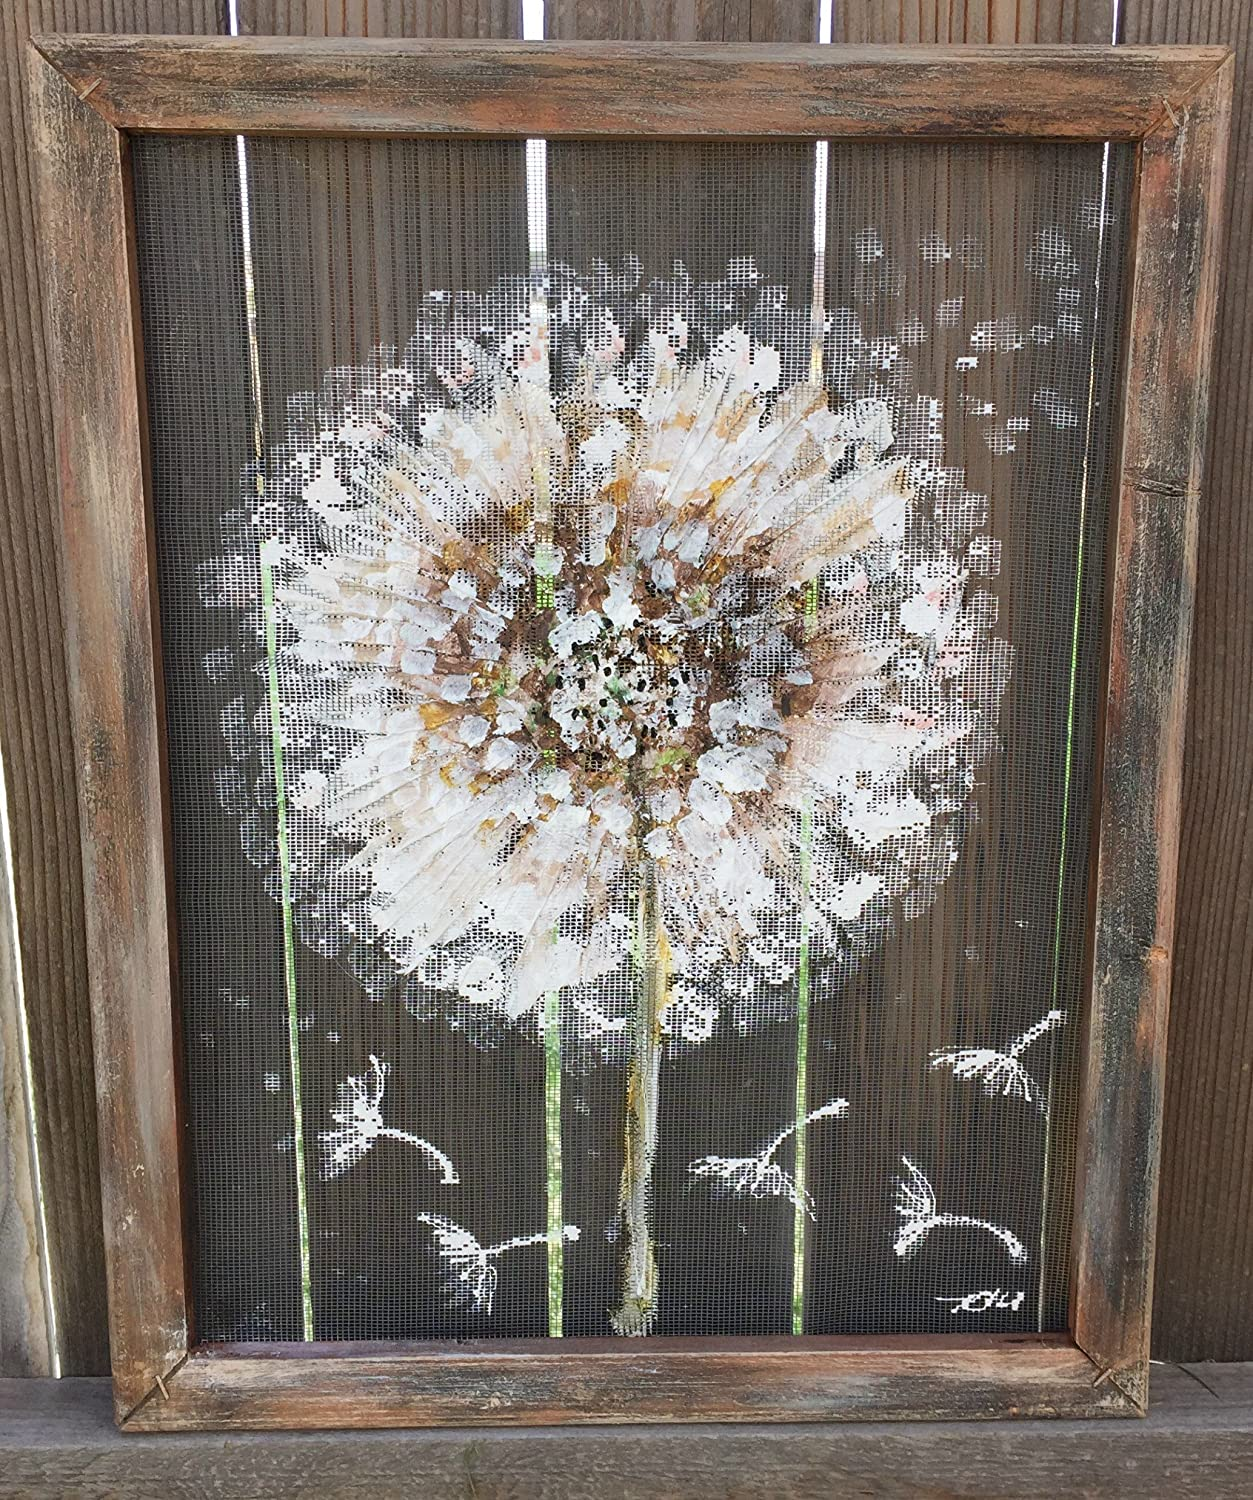 handmade outdoor art window screen country style rustic art hand painted screen art Make a wish Dandelion recycled